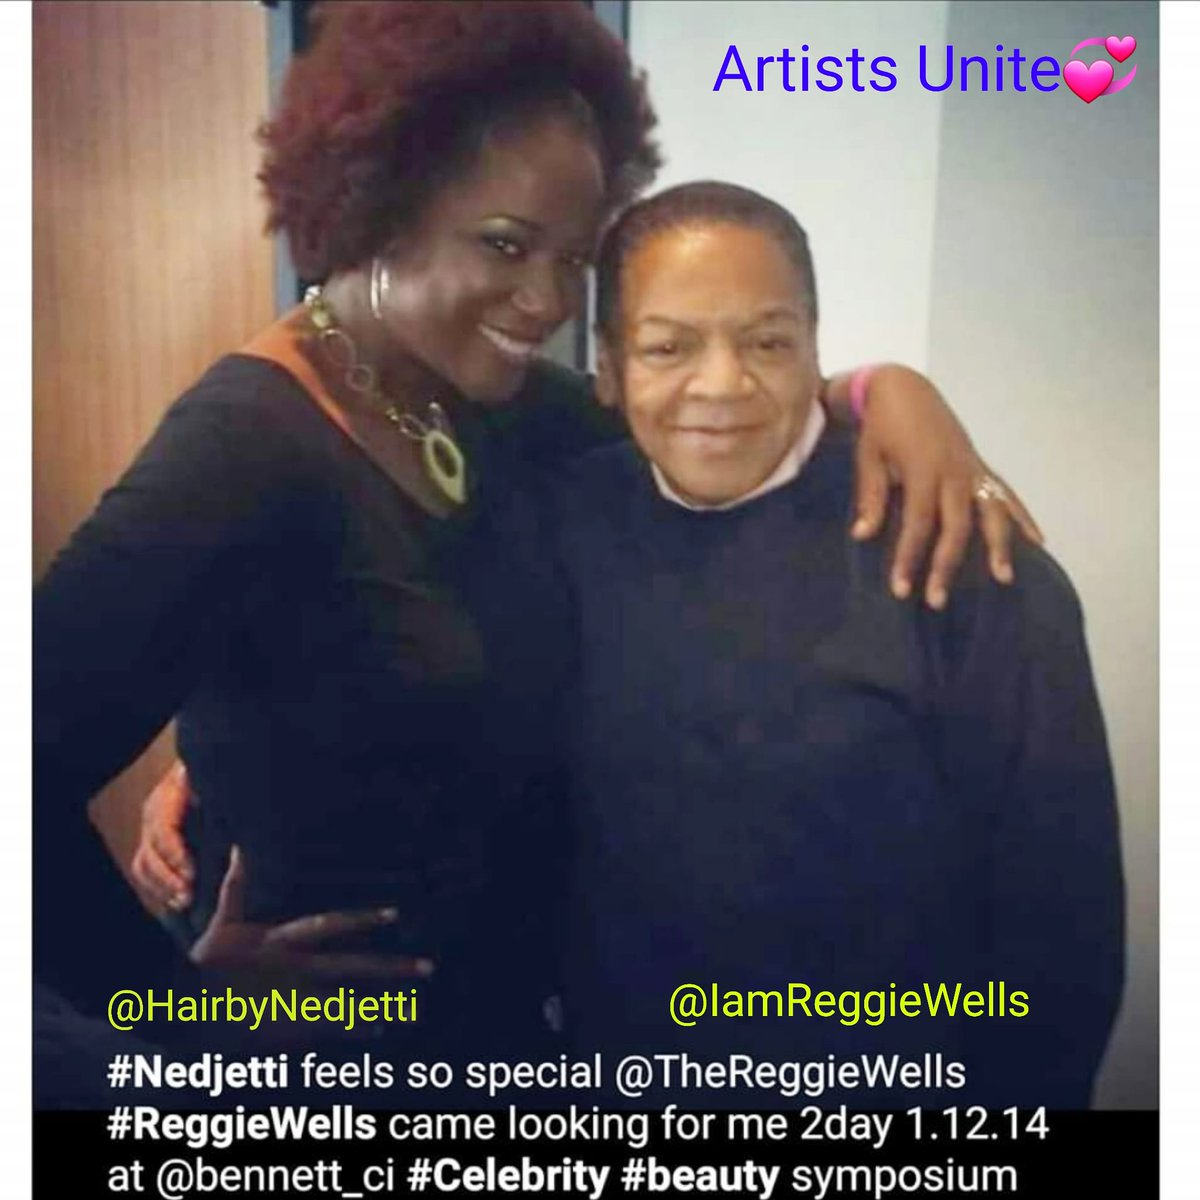 #fbf 1.12.14 The special day our Legendary #MakeupArtist King @TheReggieWells came looking for me during my #LOreal #NaturalHair CEU class in DC to say Hi💞  I ❤you my dear friend #ReggieWells Mr. BeY👑Utiful soul, Innovative & Extraordinaire #MUA💄 #ArtistsUnite 🤛🏾 #Nedjetti🥰